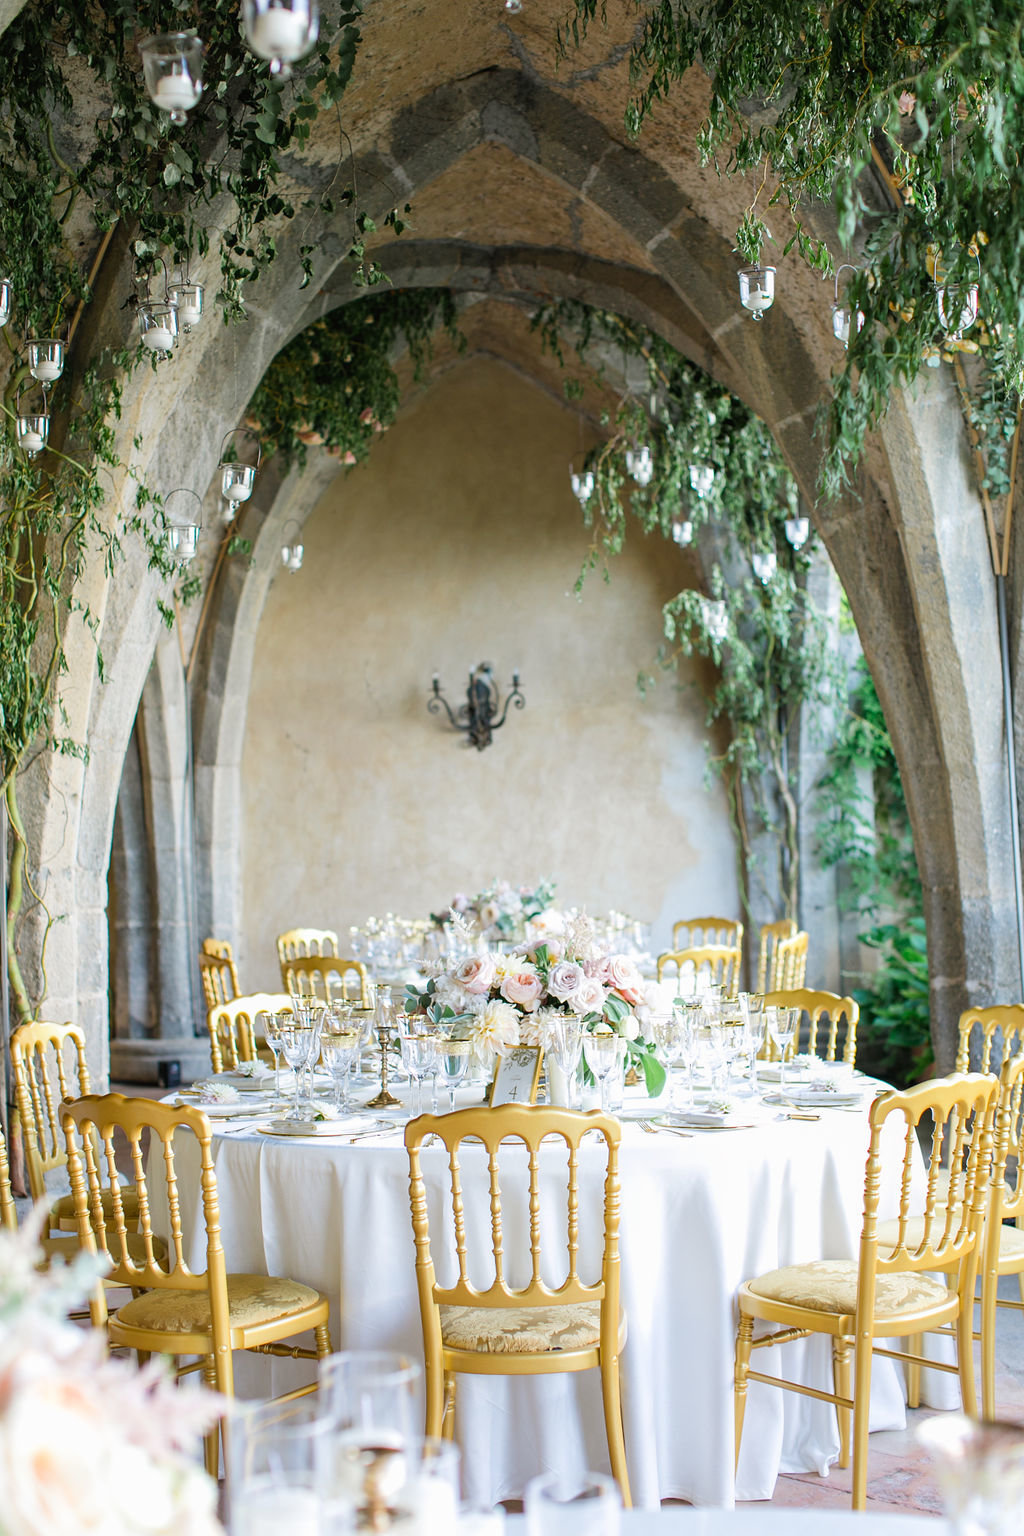 villa-cimbrone-amalfi-wedding-photographer-roberta-facchini-photography-7